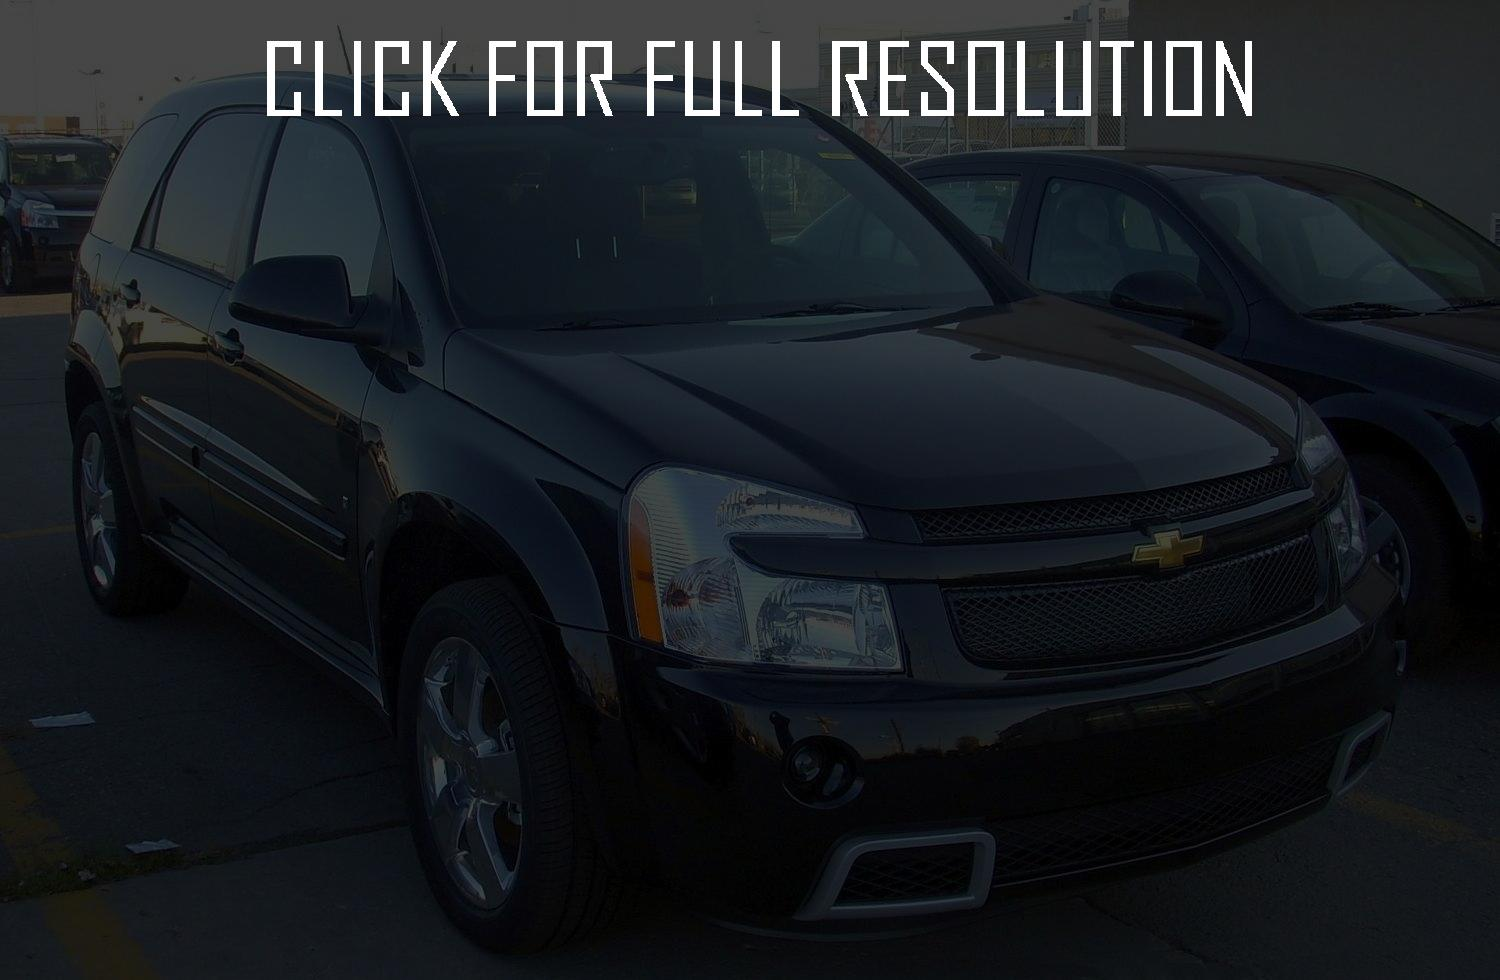 Equinox 2007 chevrolet equinox specs : 2007 Chevrolet Equinox – pictures, information and specs - Auto ...